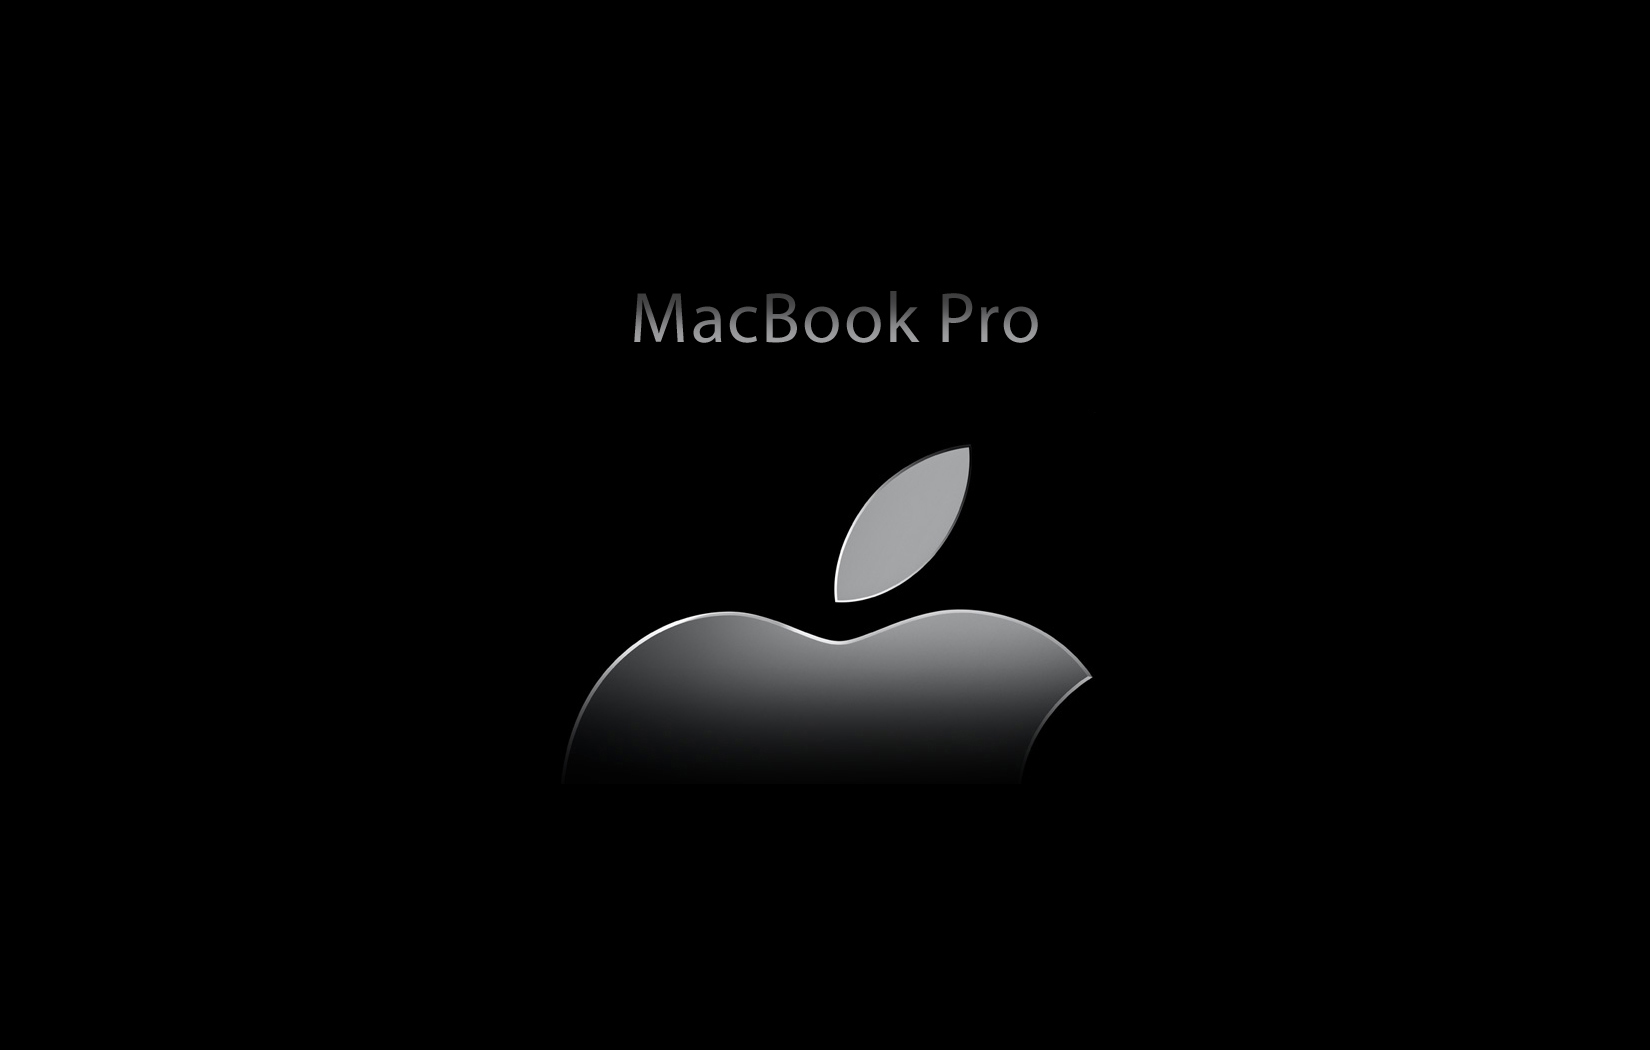 macbook pro wallpapers HD 1650x1050